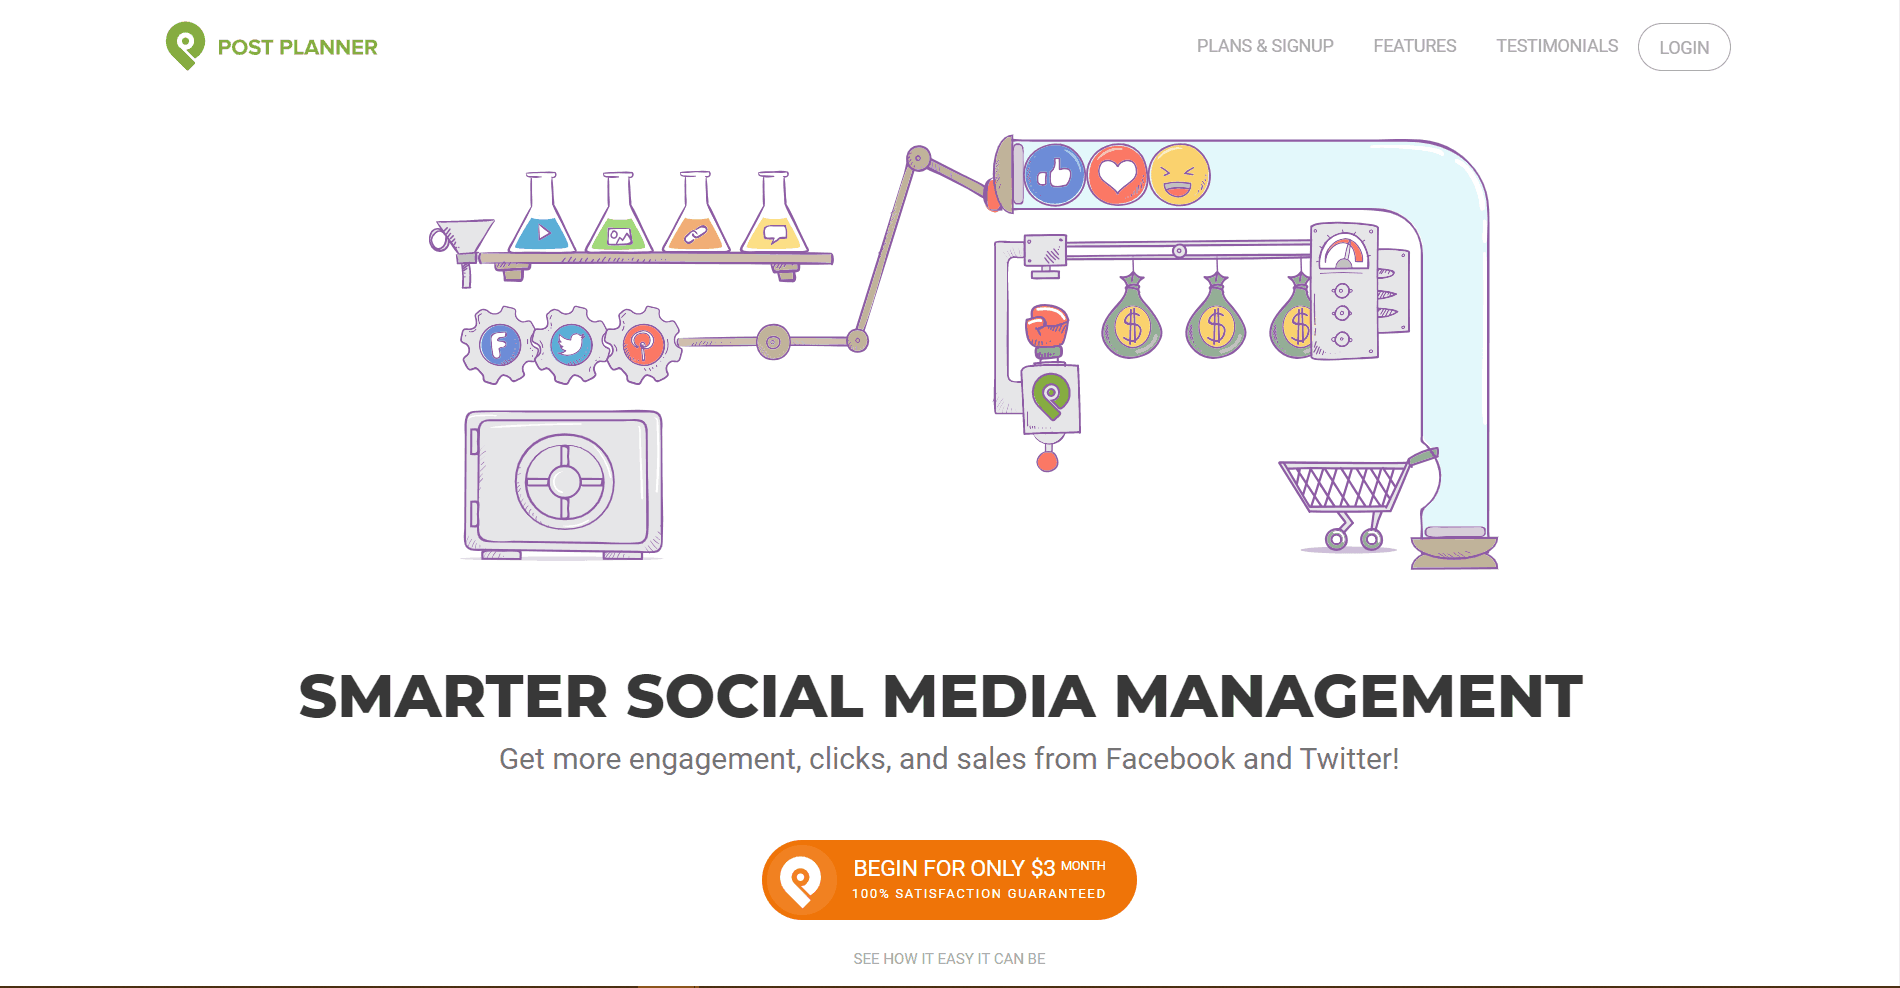 Post Planner Social Media Marketing Tool